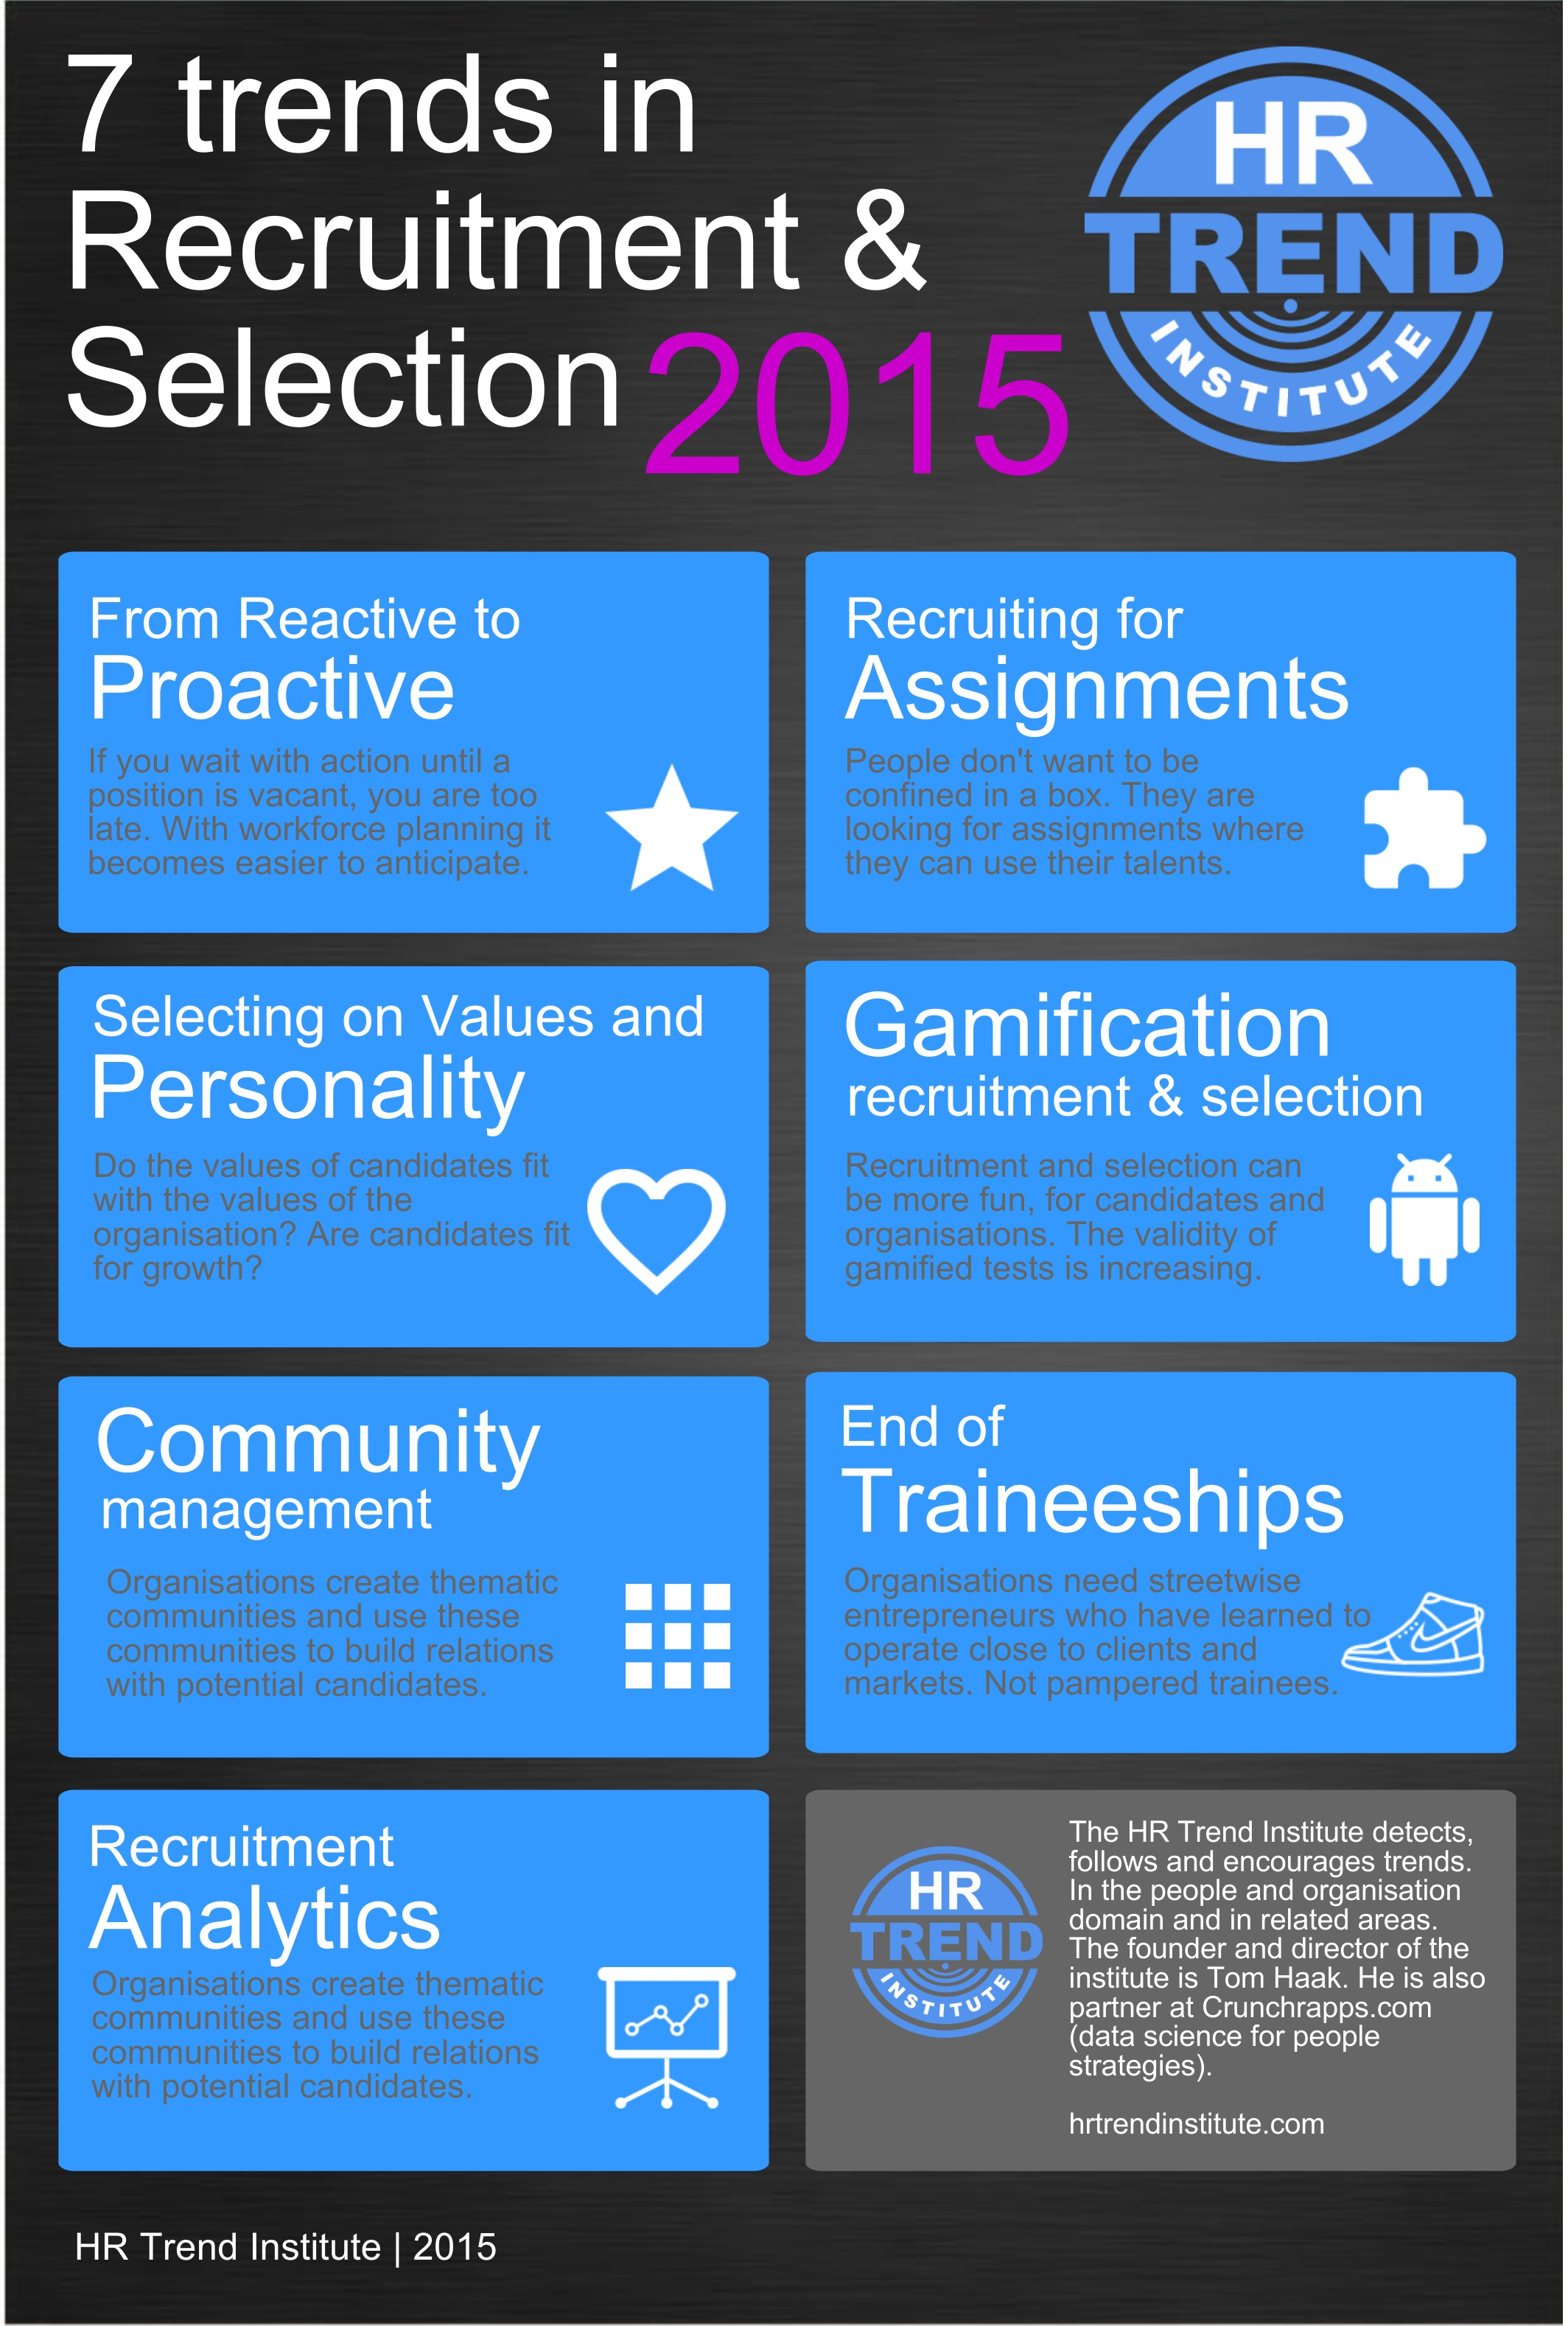 Trends In Recruitment And Selection: New Infographic